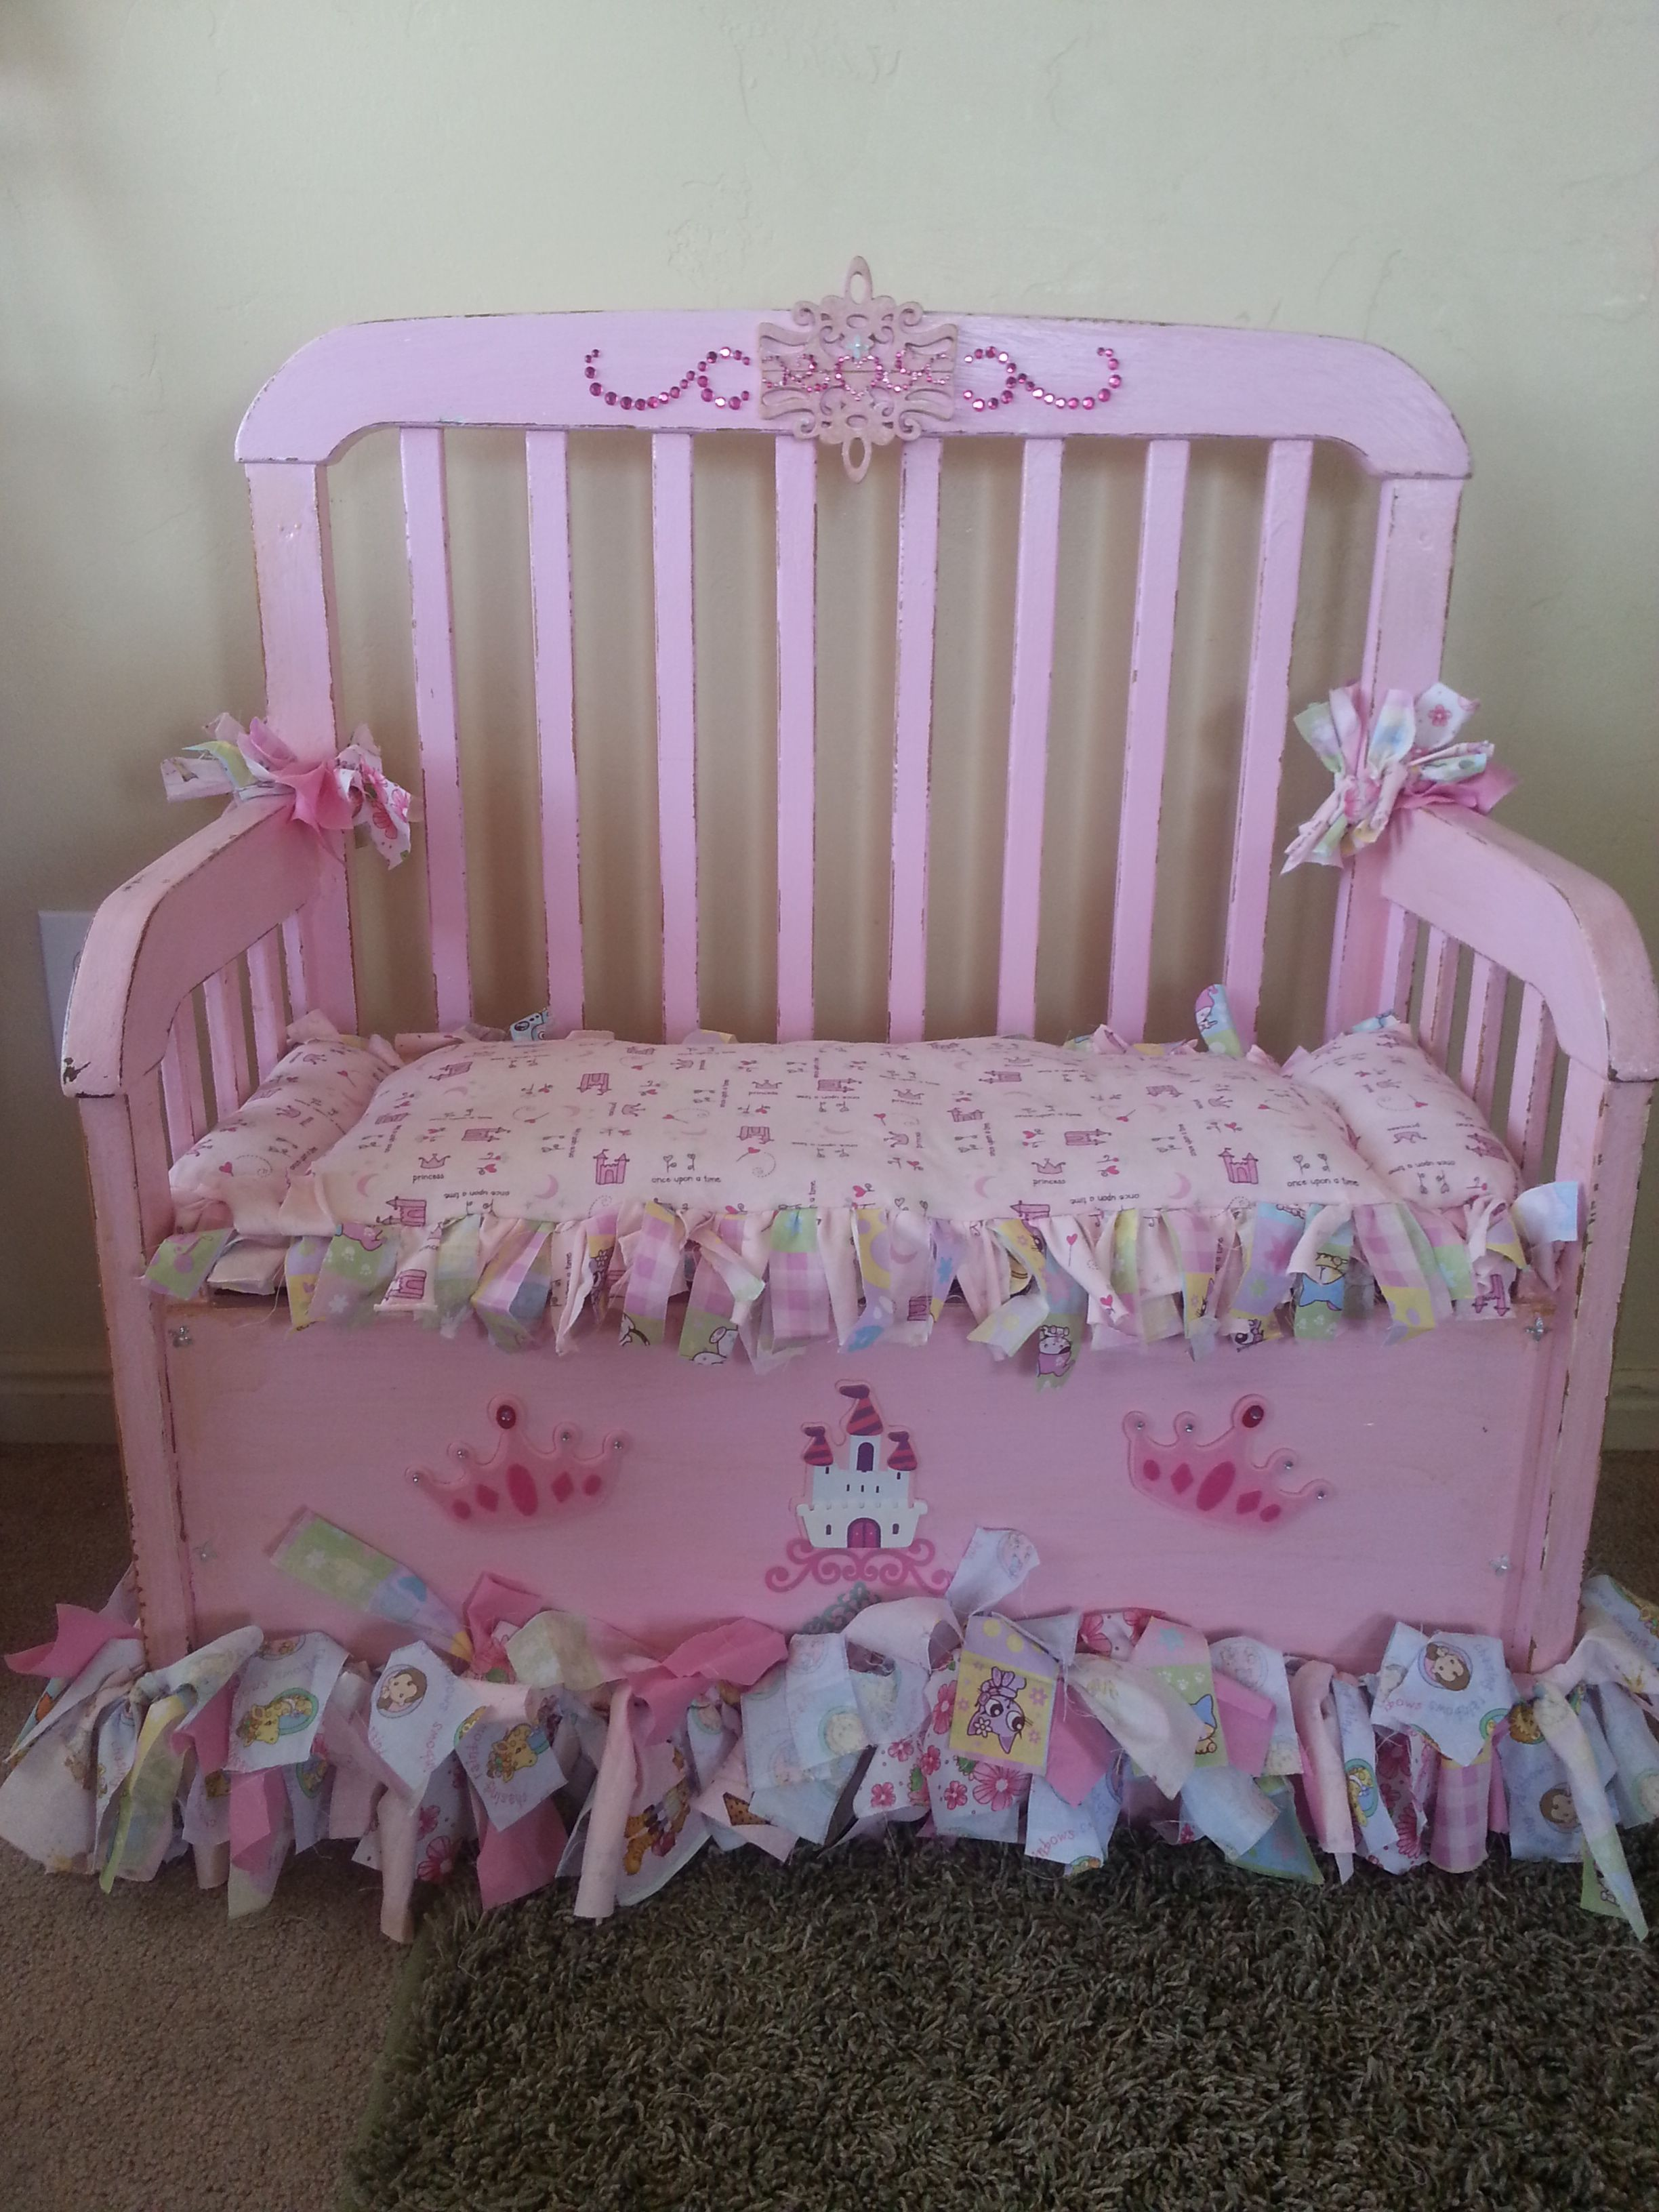 My Girls repurposed baby crib, now a Toy Chest/Bench Old